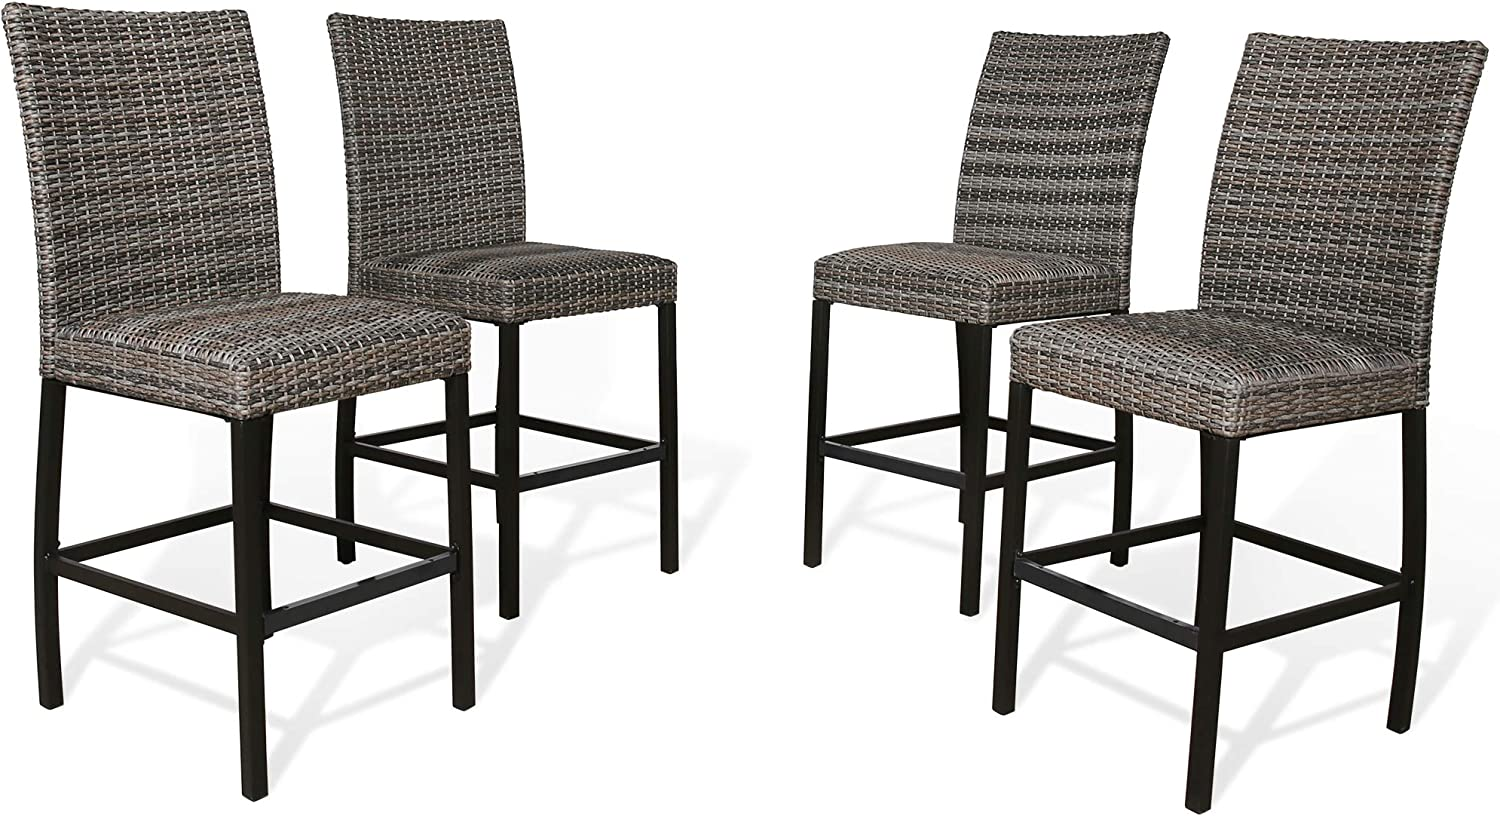 Iwicker Patio PE Wicker Height Outdoor OFFicial Max 67% OFF Chairs Ste Heavy-Duty Bar